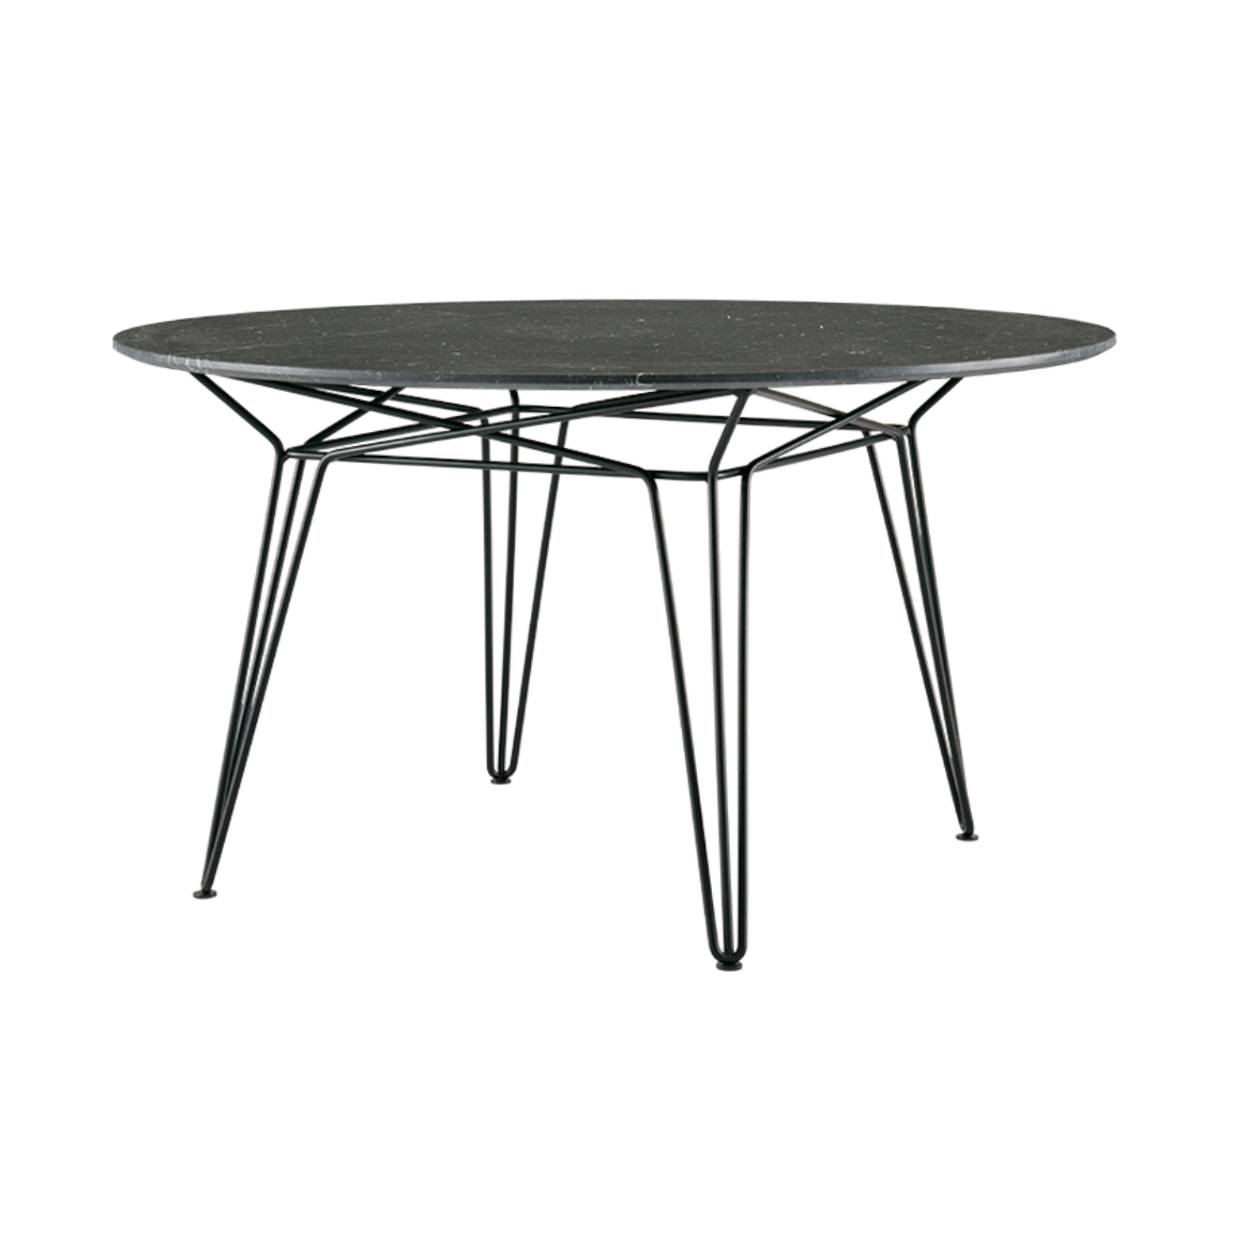 Parisi Dining Table: Black + Black Marble